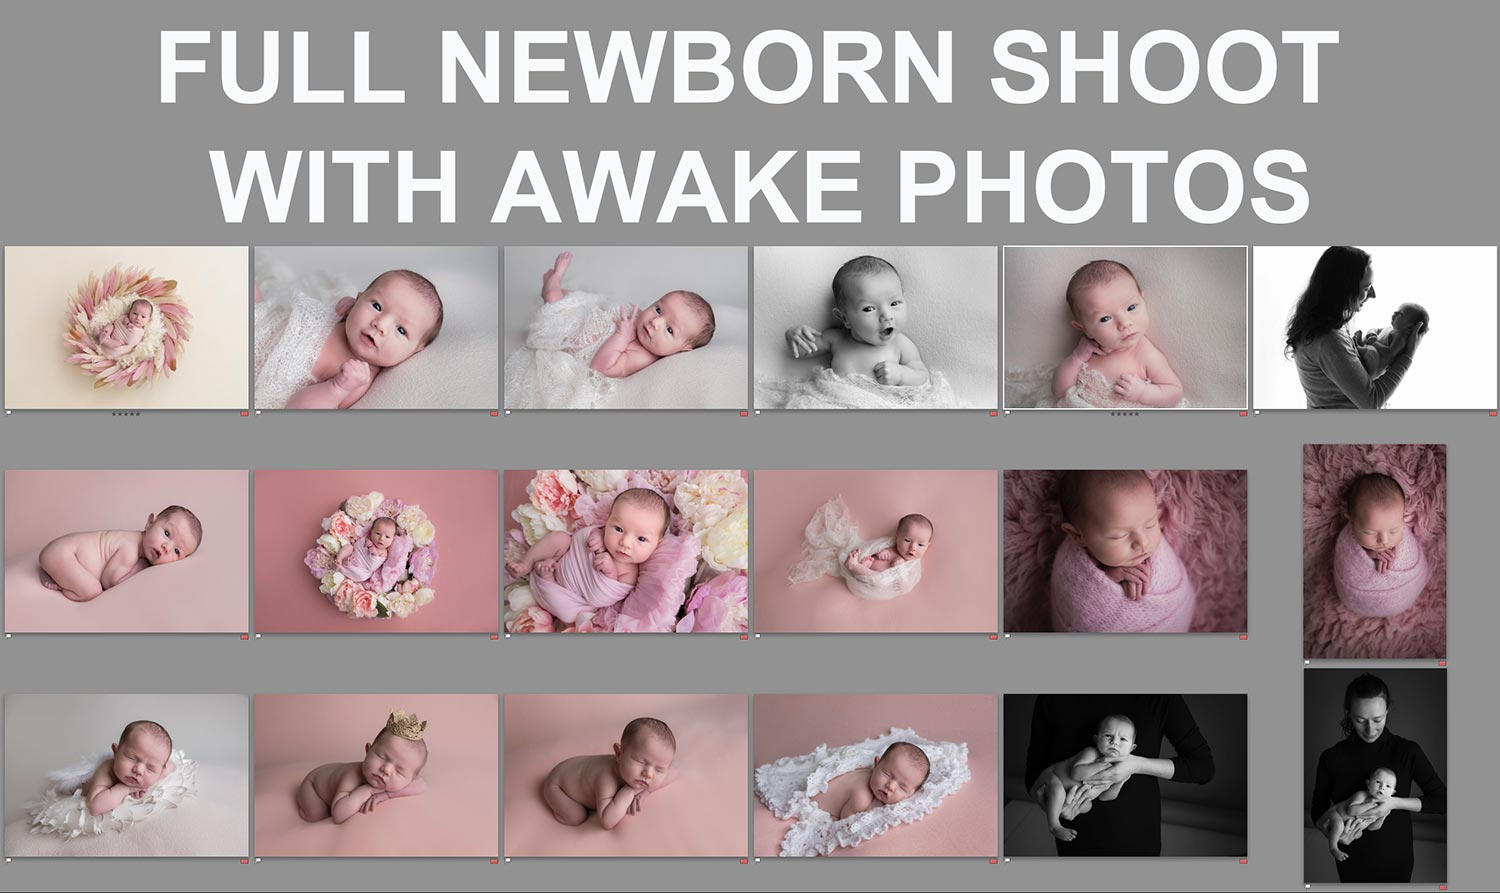 fussy and awake newborn photos guide.